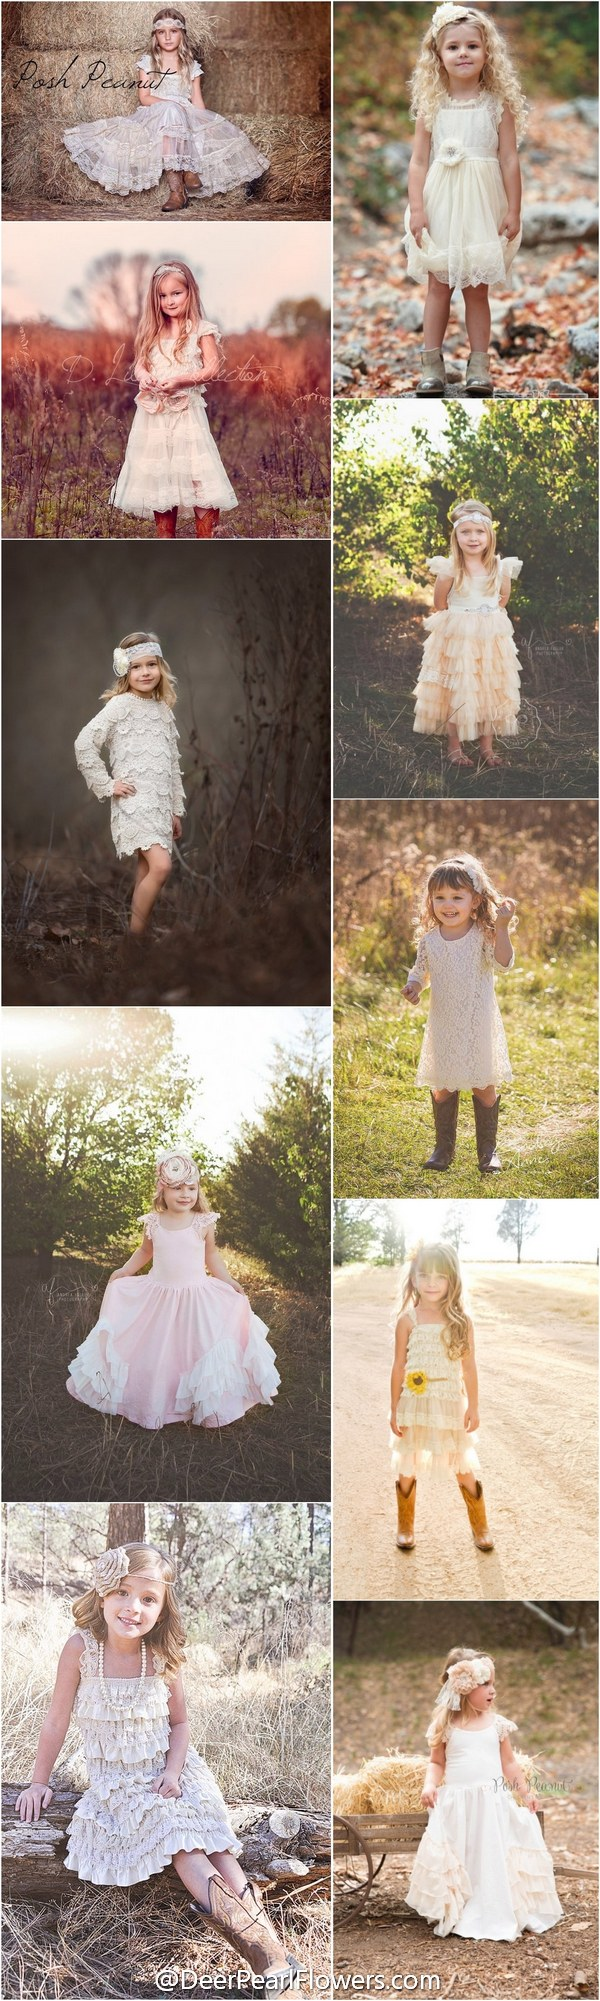 Dresses for a country wedding   Flower Girl Dresses For Country Weddings  Rustic country